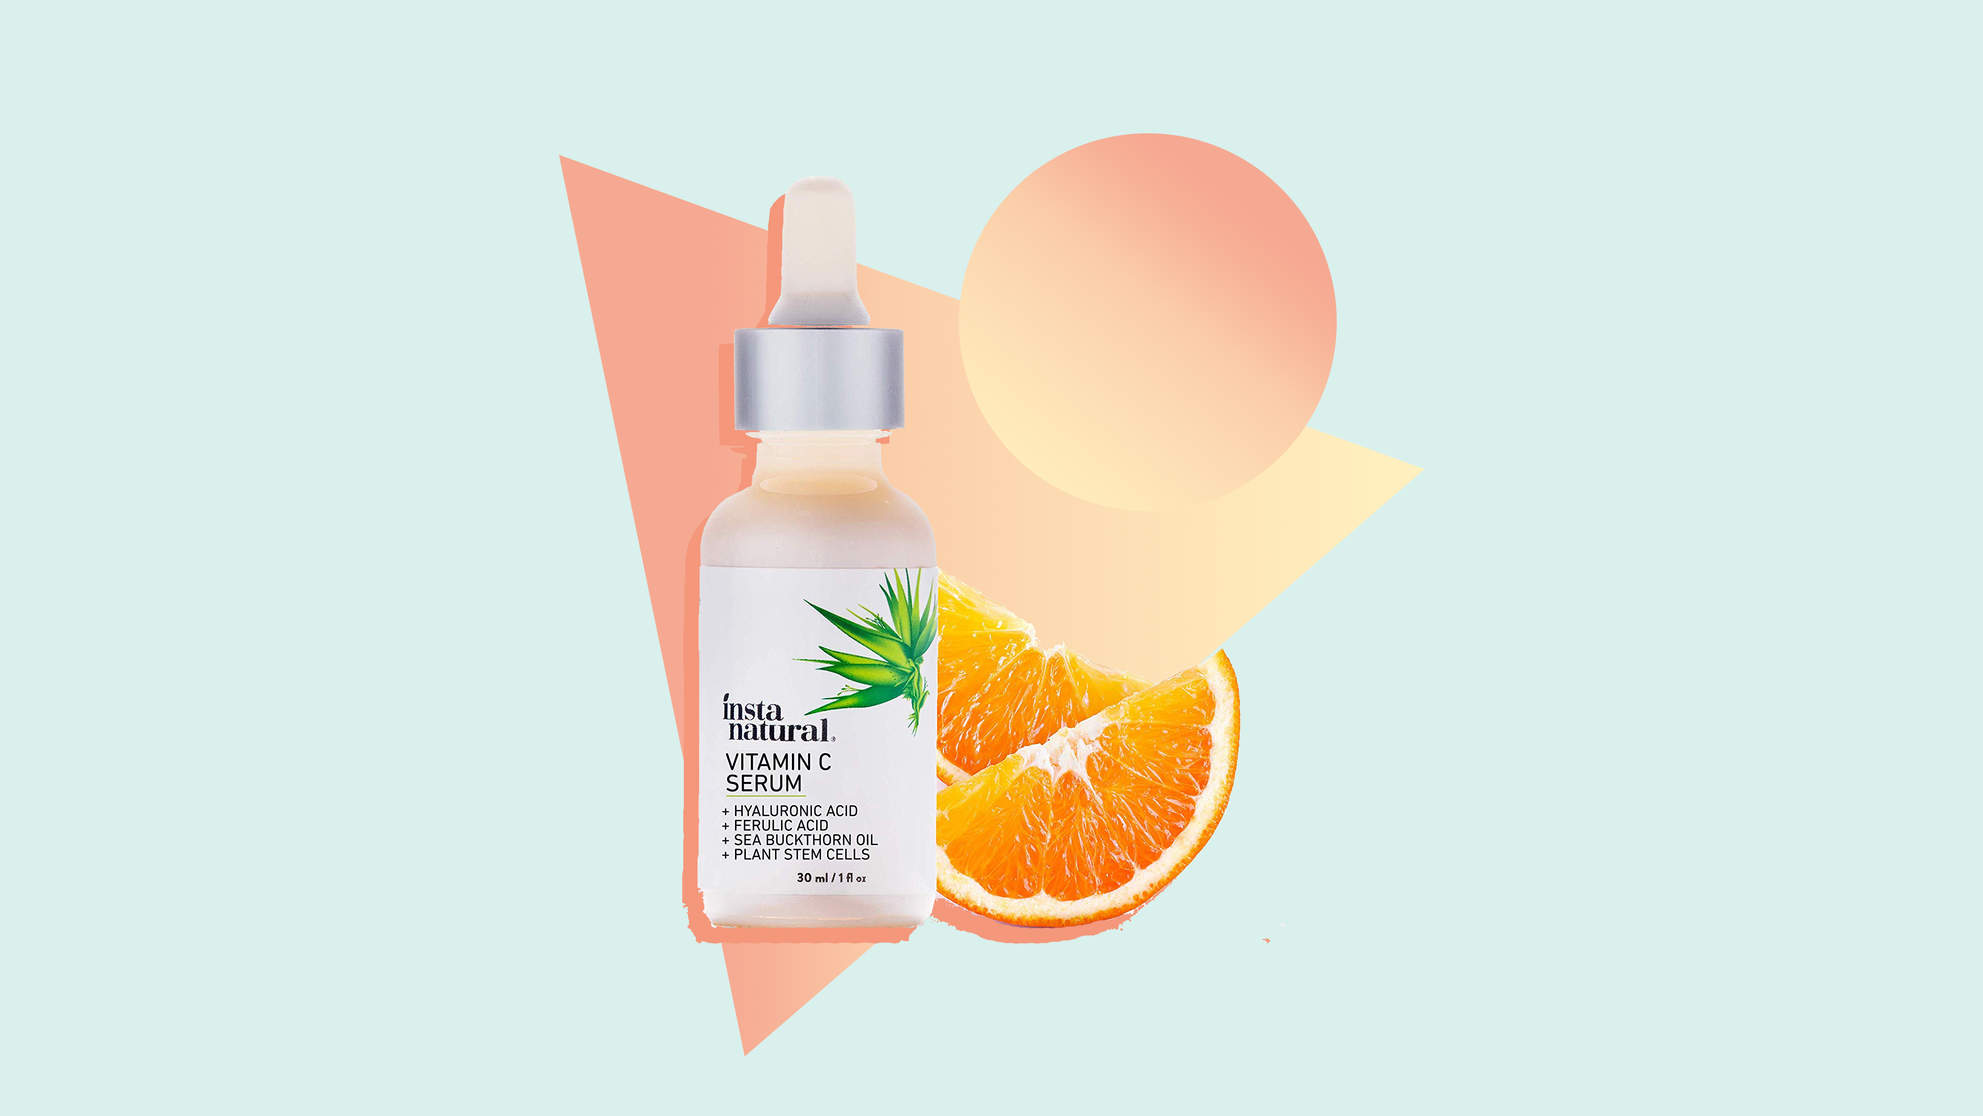 vitamin-c-serum amazon woman health wellbeing skin skincare shopping antioxidant serum rejuvenate